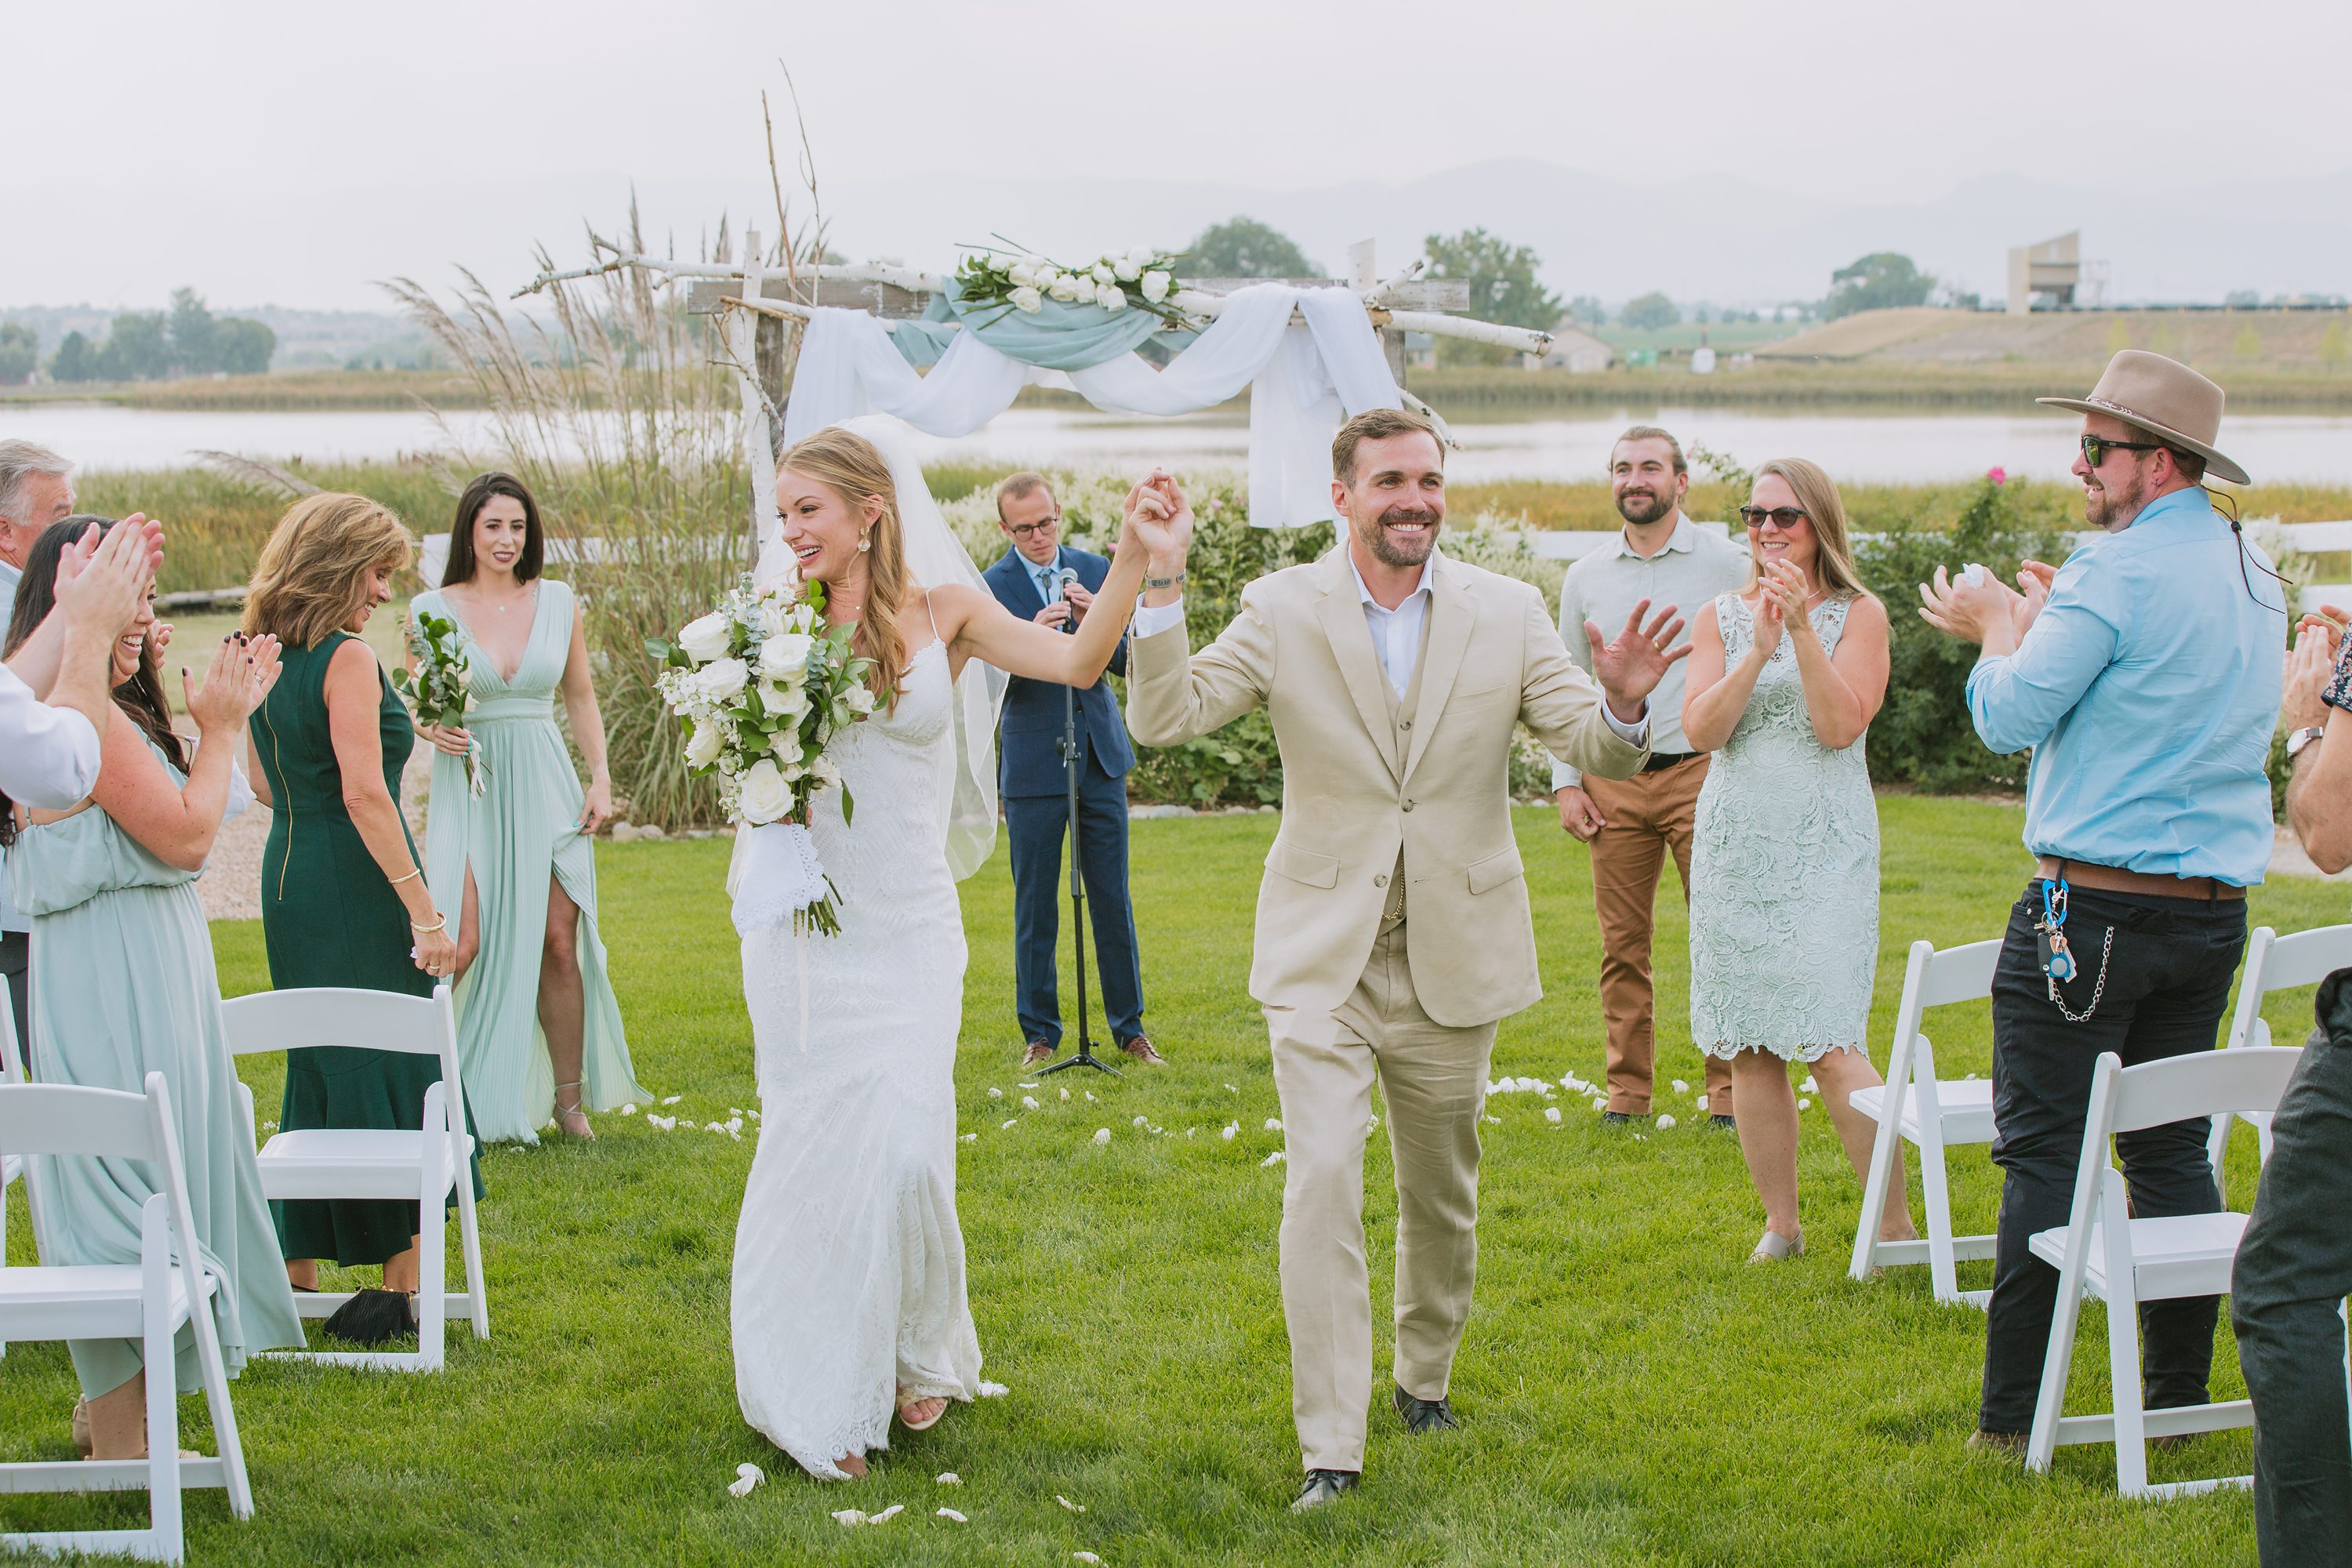 walking up the aisle,outdoor wedding ceremony